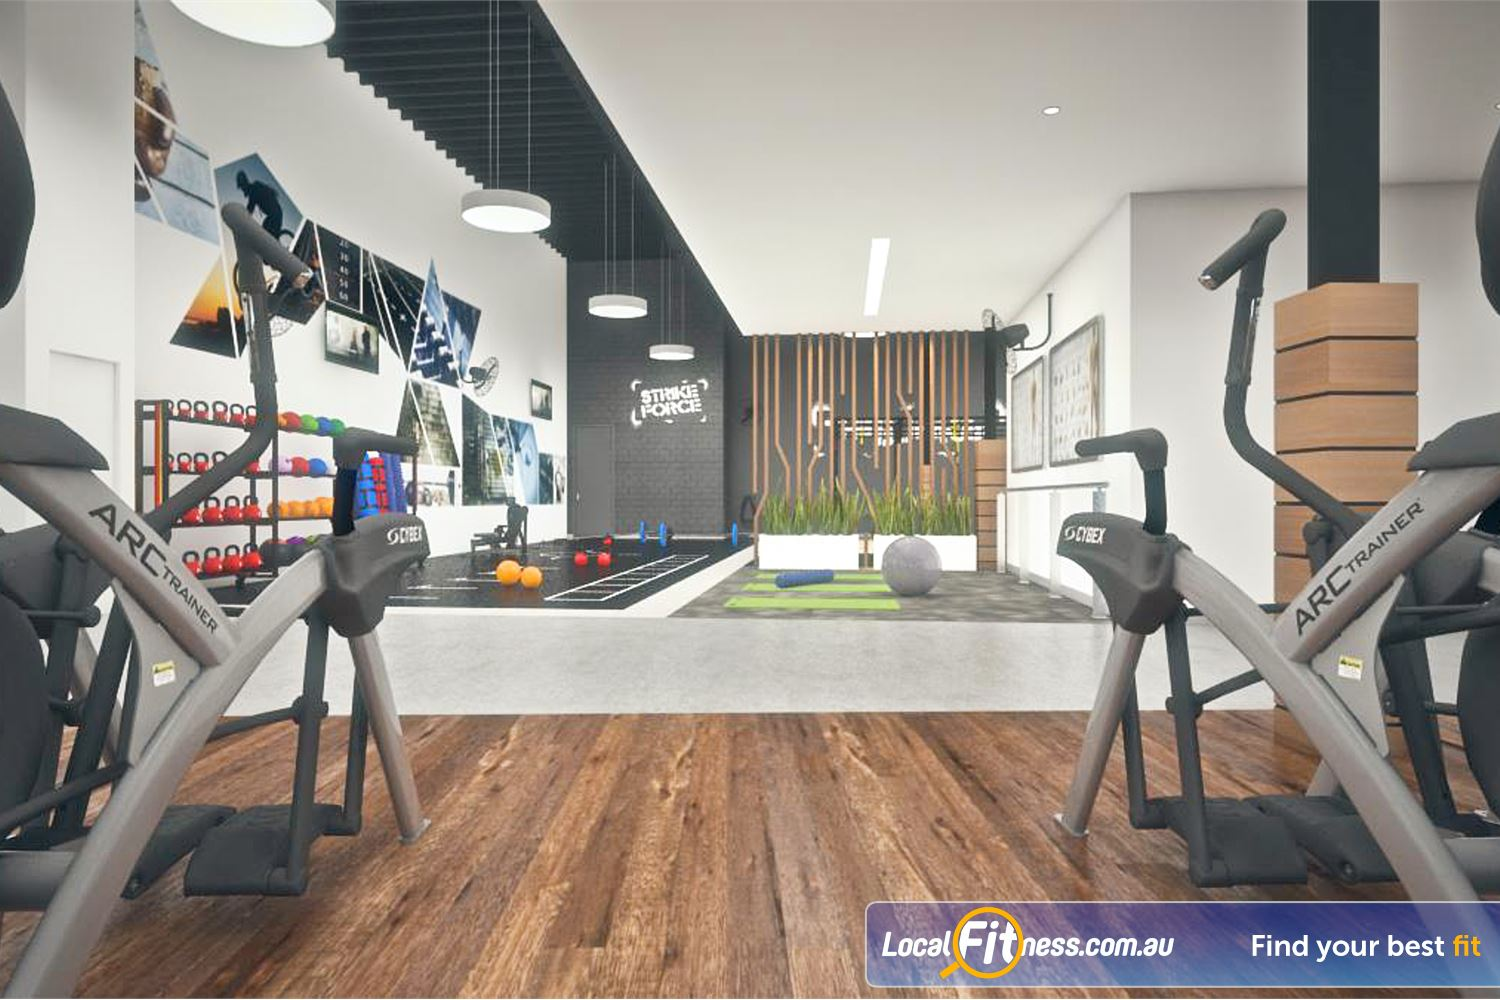 Goodlife Health Clubs Near Wattleup Try the new Cybex Arc trainers with LCD TV.